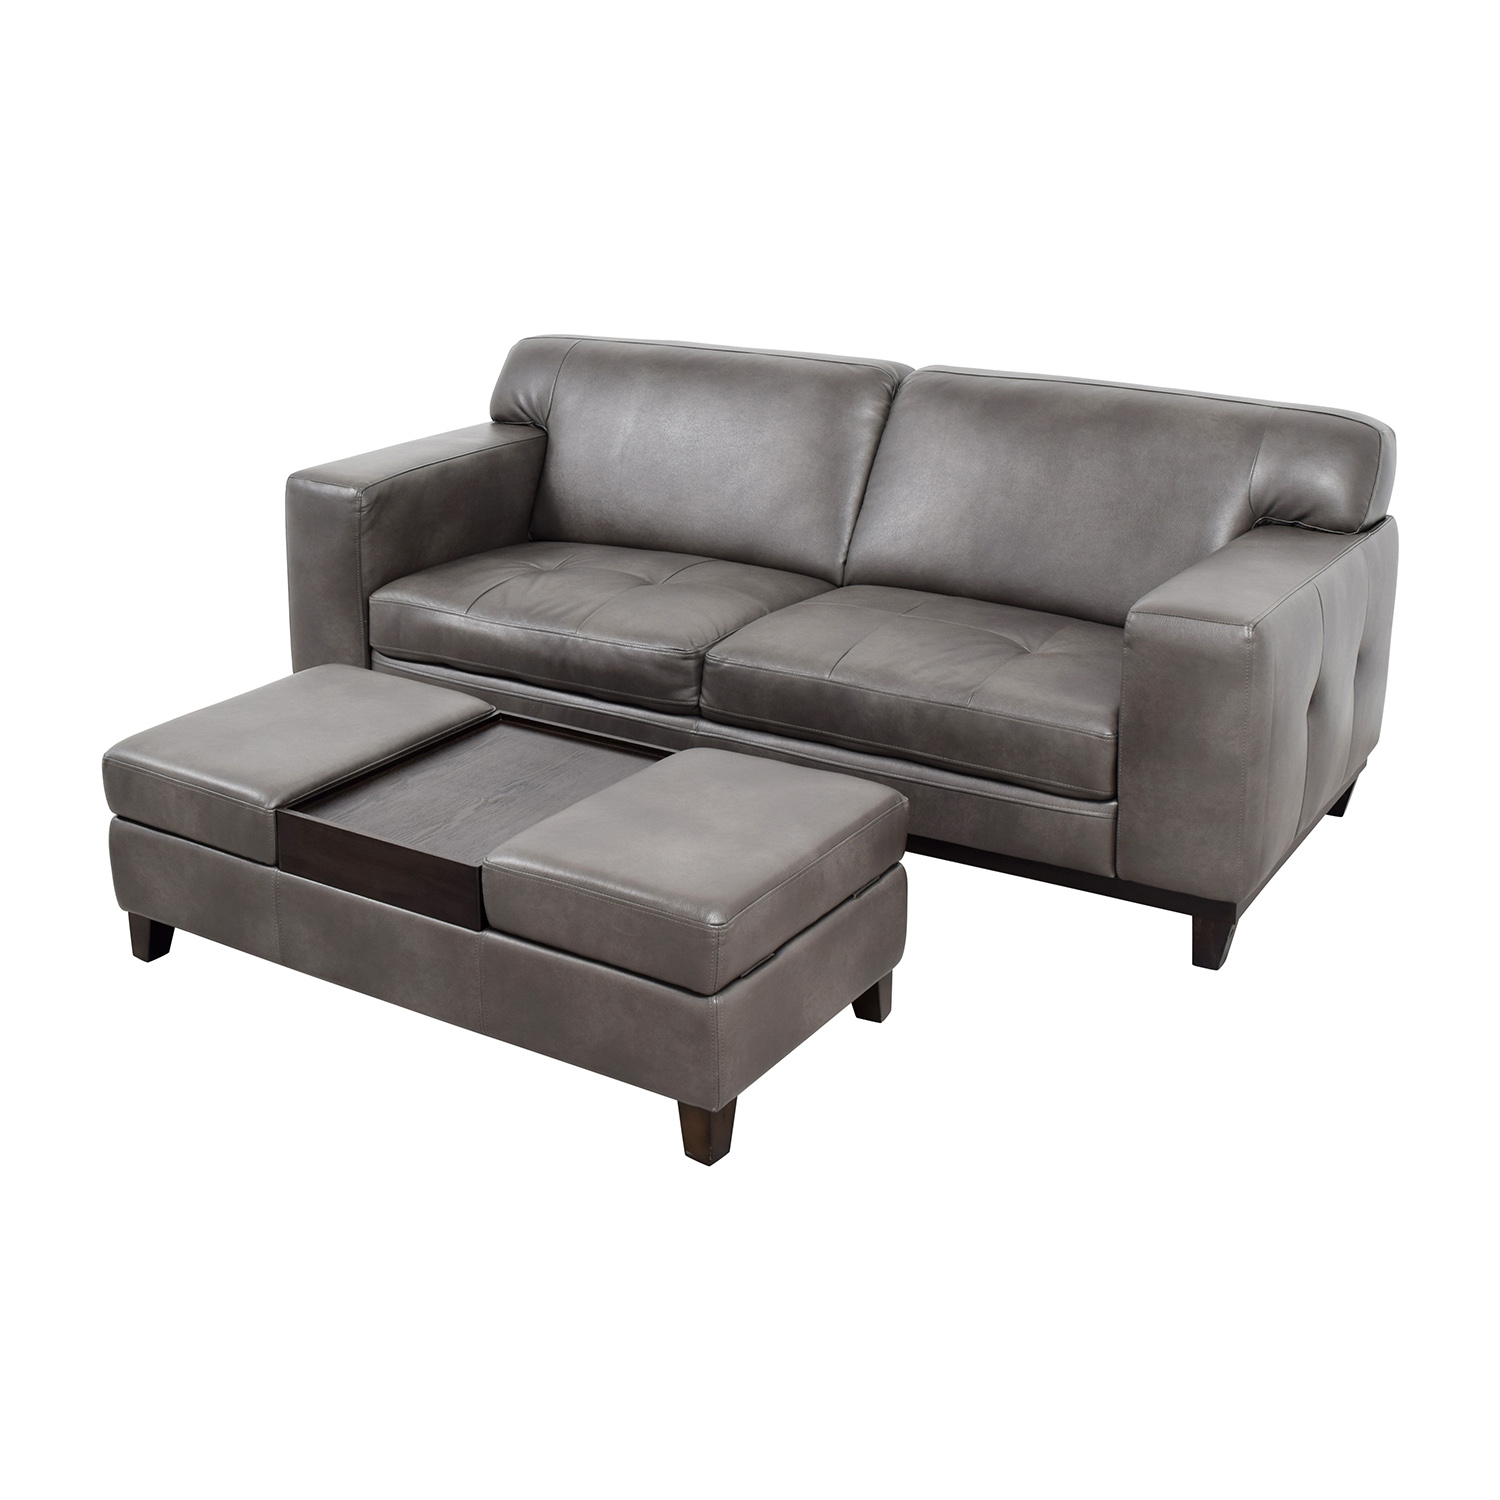 buy Raymour & Flanigan Grey Leather Couch with Storage Ottoman Raymour & Flanigan Classic Sofas